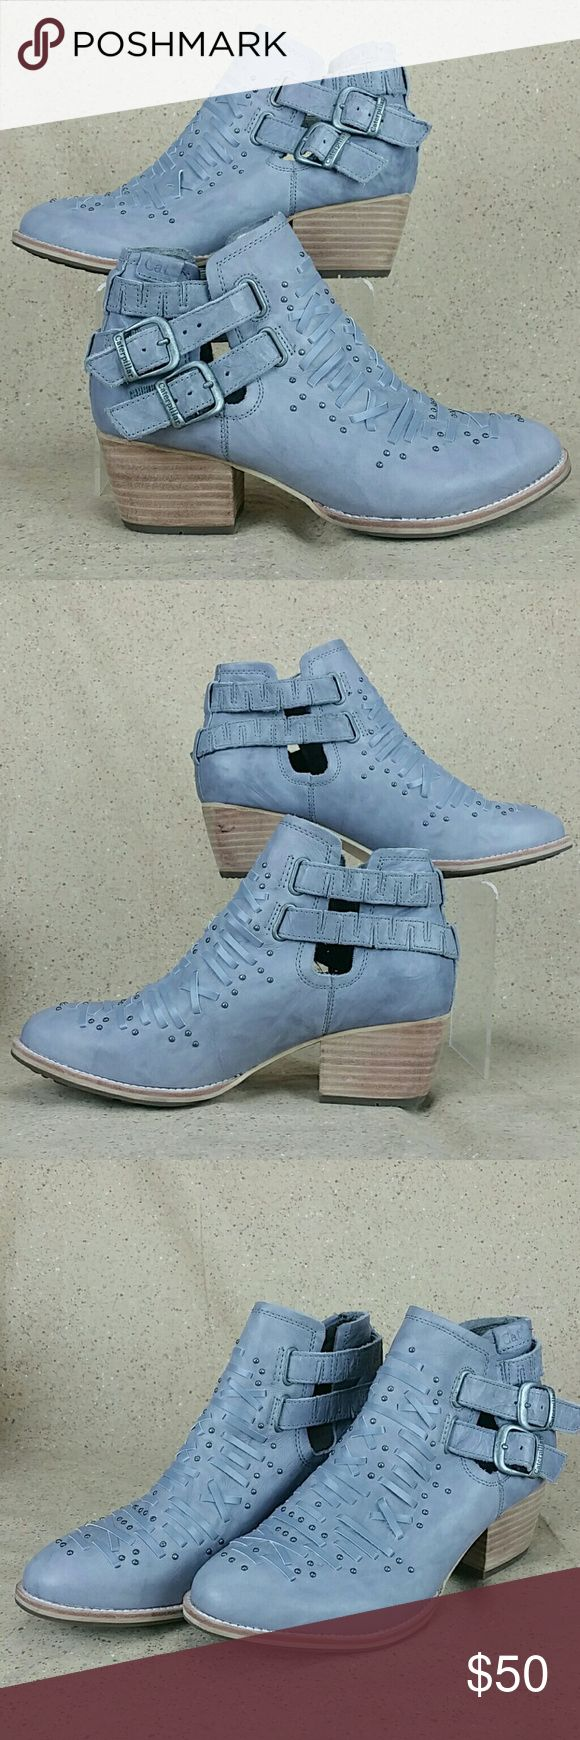 Cat Footwear Cheyenne Ankle Booties W 7.5w These booties are pre-owned in excellent condition. Gentle wear on the outside from use. Little to no wear to the bottoms. Look over the pictures carefully before purchasing. Caterpillar Shoes Ankle Boots & Booties